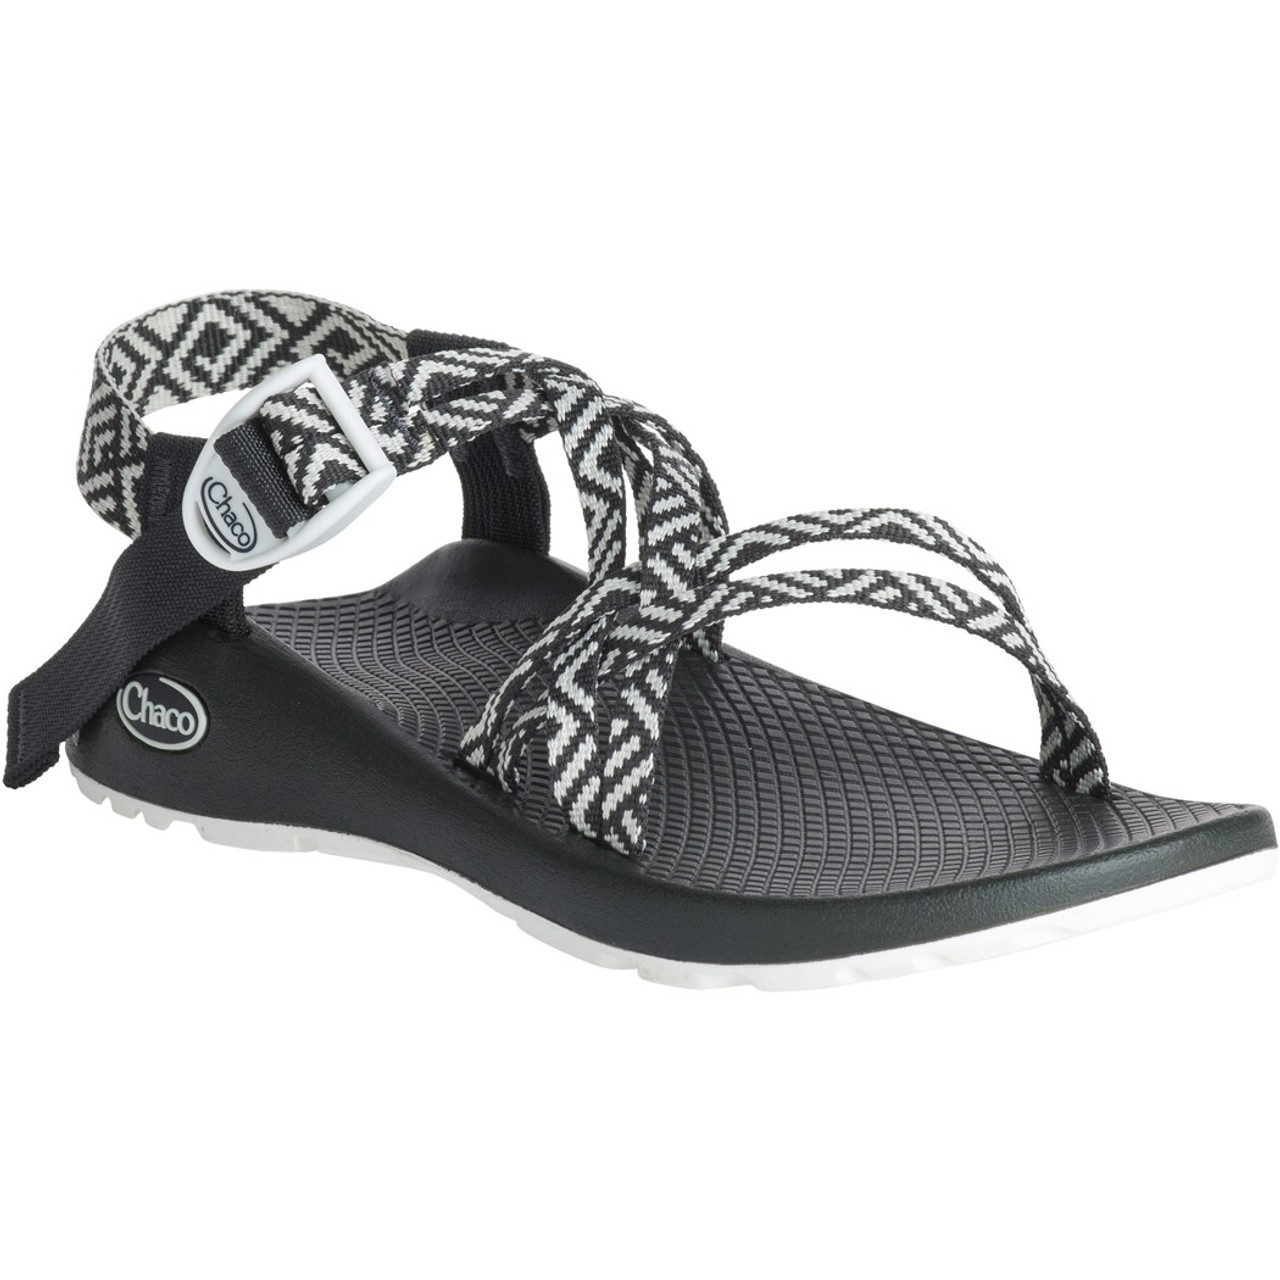 e6fdf4383 Chacos Women s Sandals - ZX 1 Classic - Oragami Black - Surf and Dirt